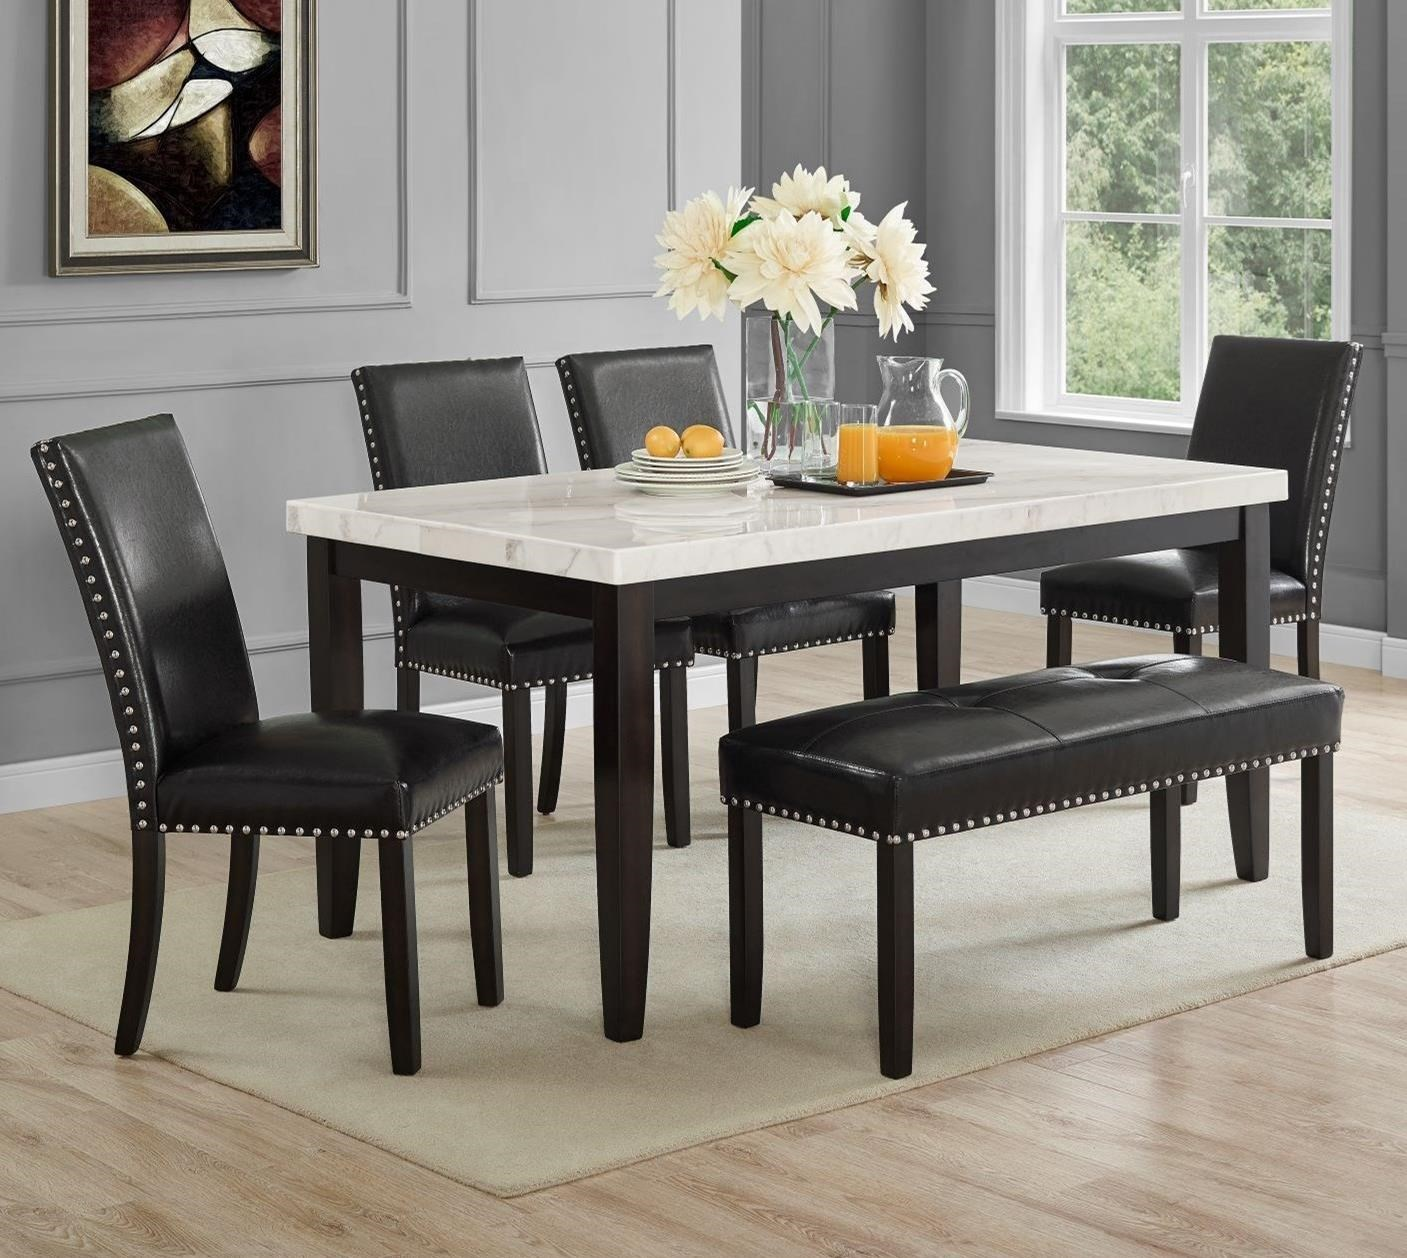 Westby Table and Chair Set with Bench by Steve Silver at Nassau Furniture and Mattress